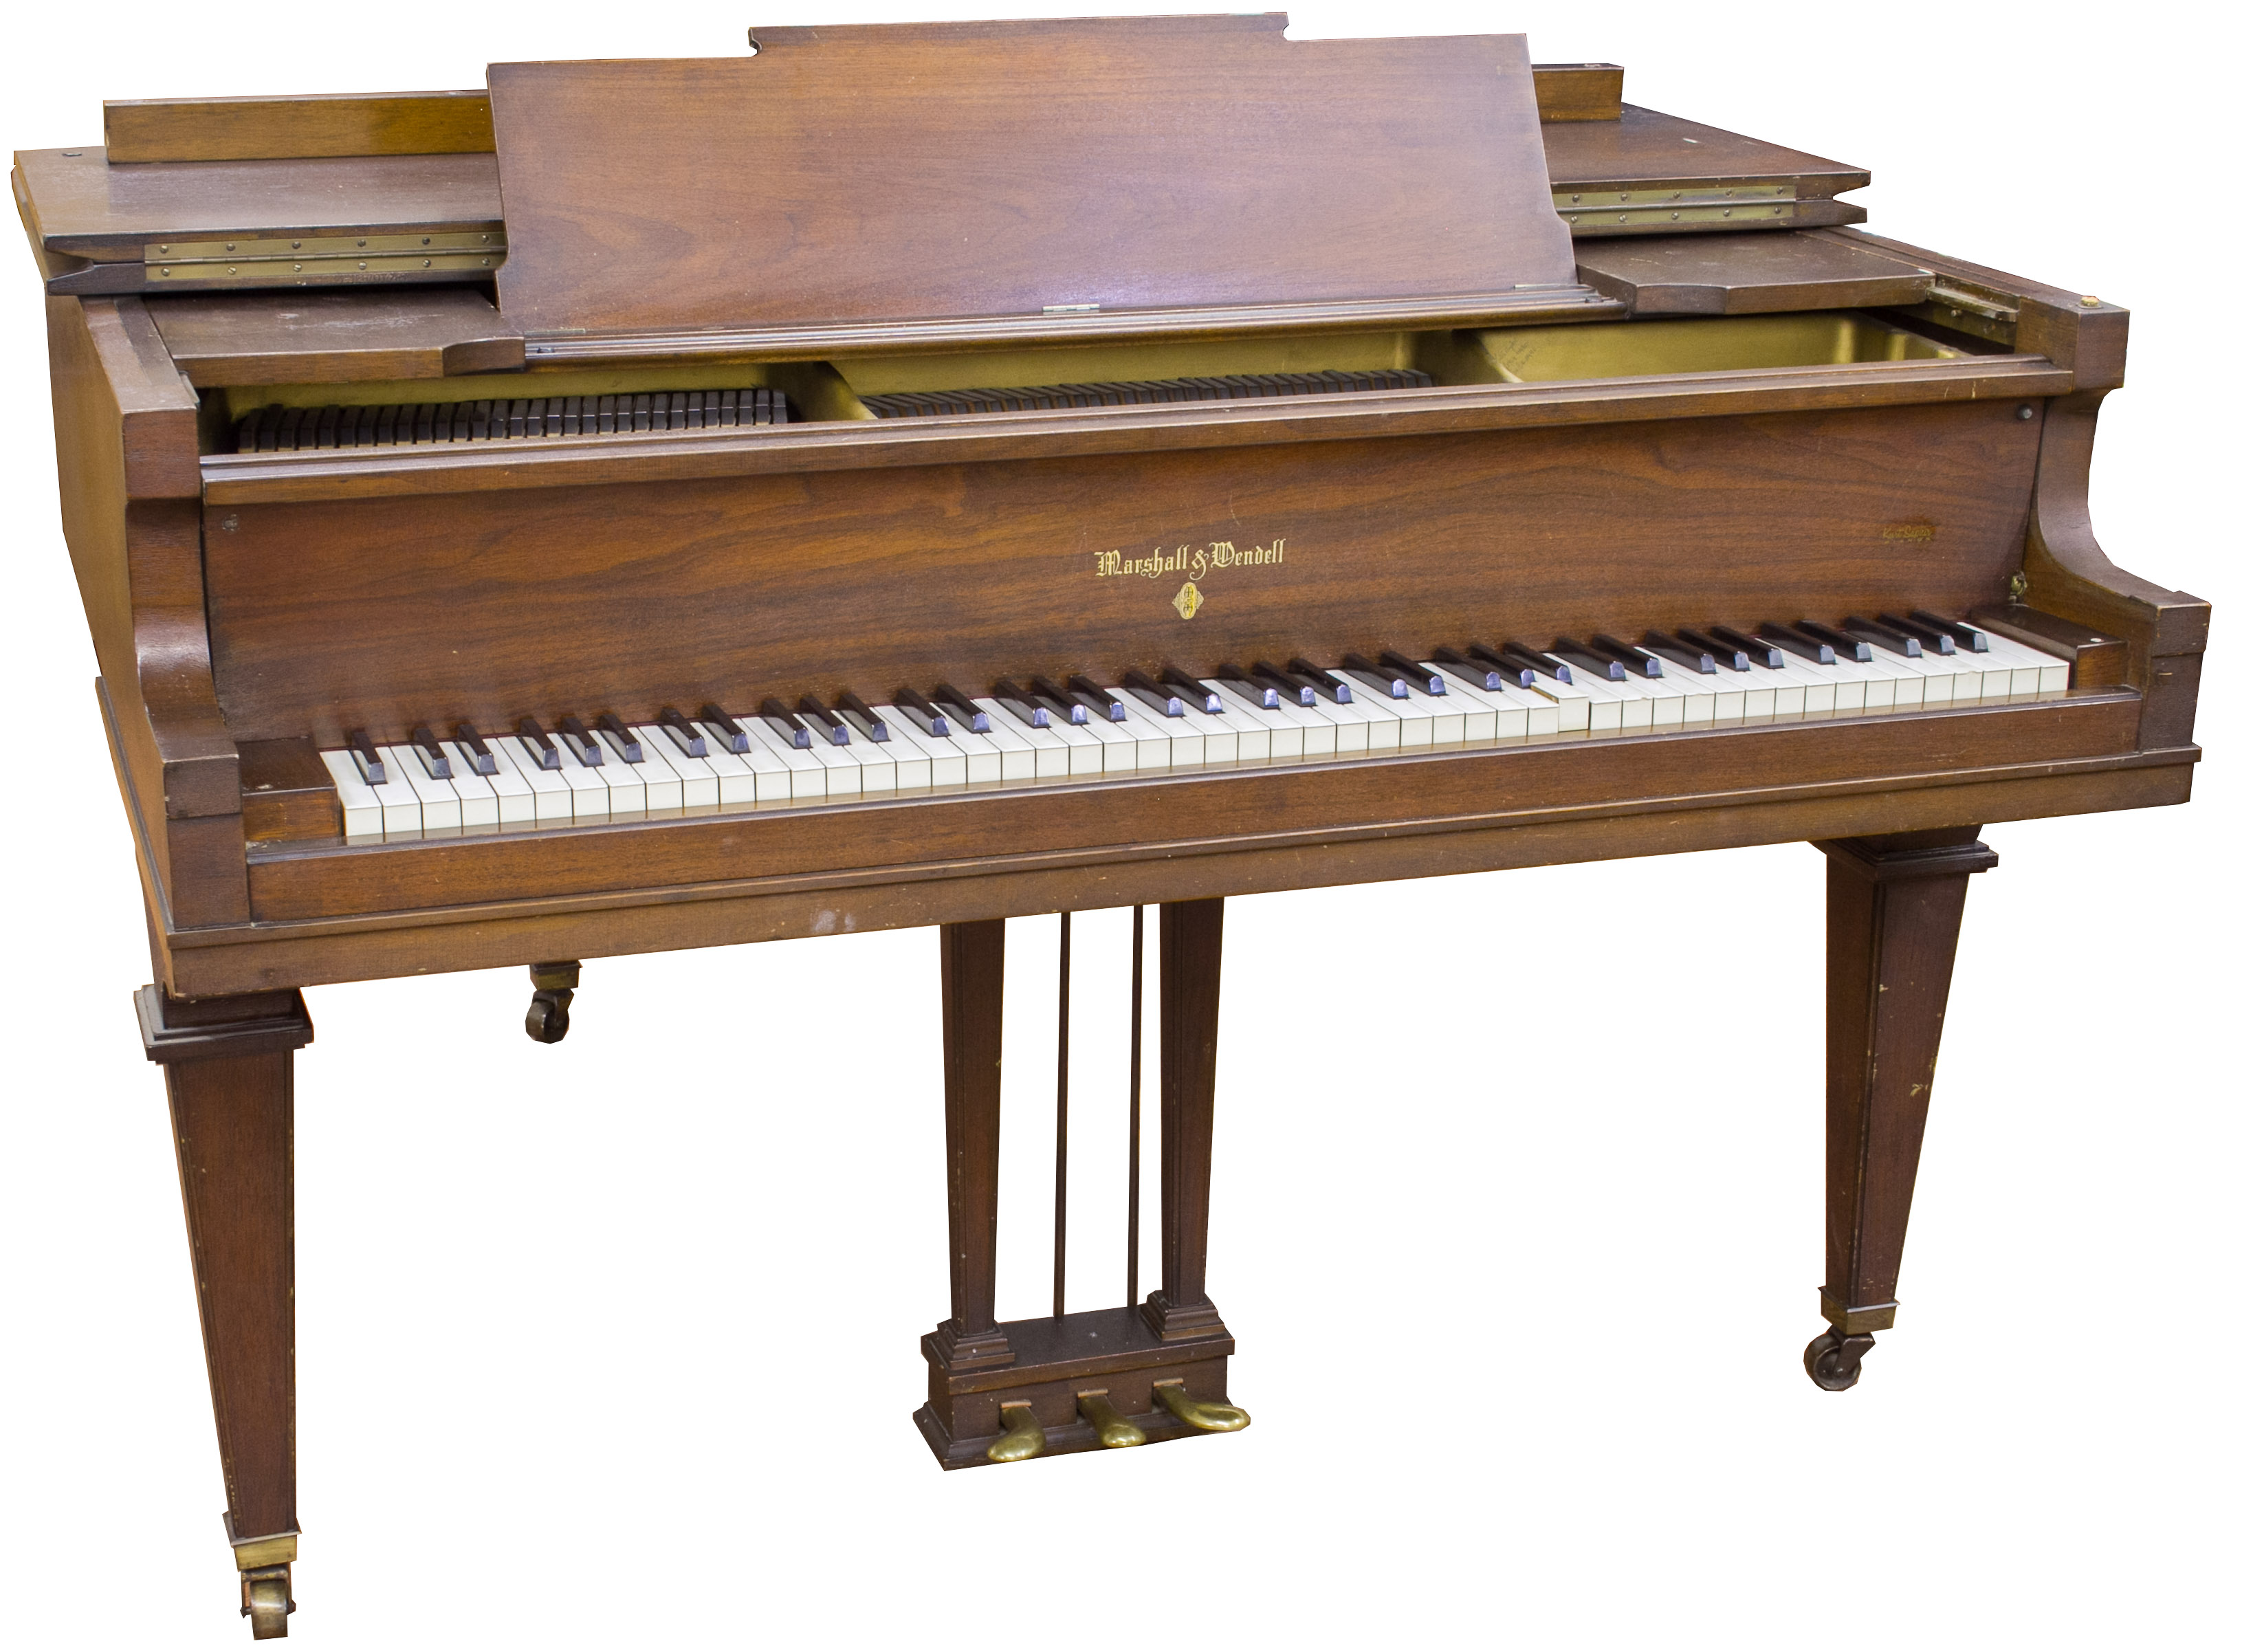 Marshal Wendell Baby Grand Piano Leonard Auction